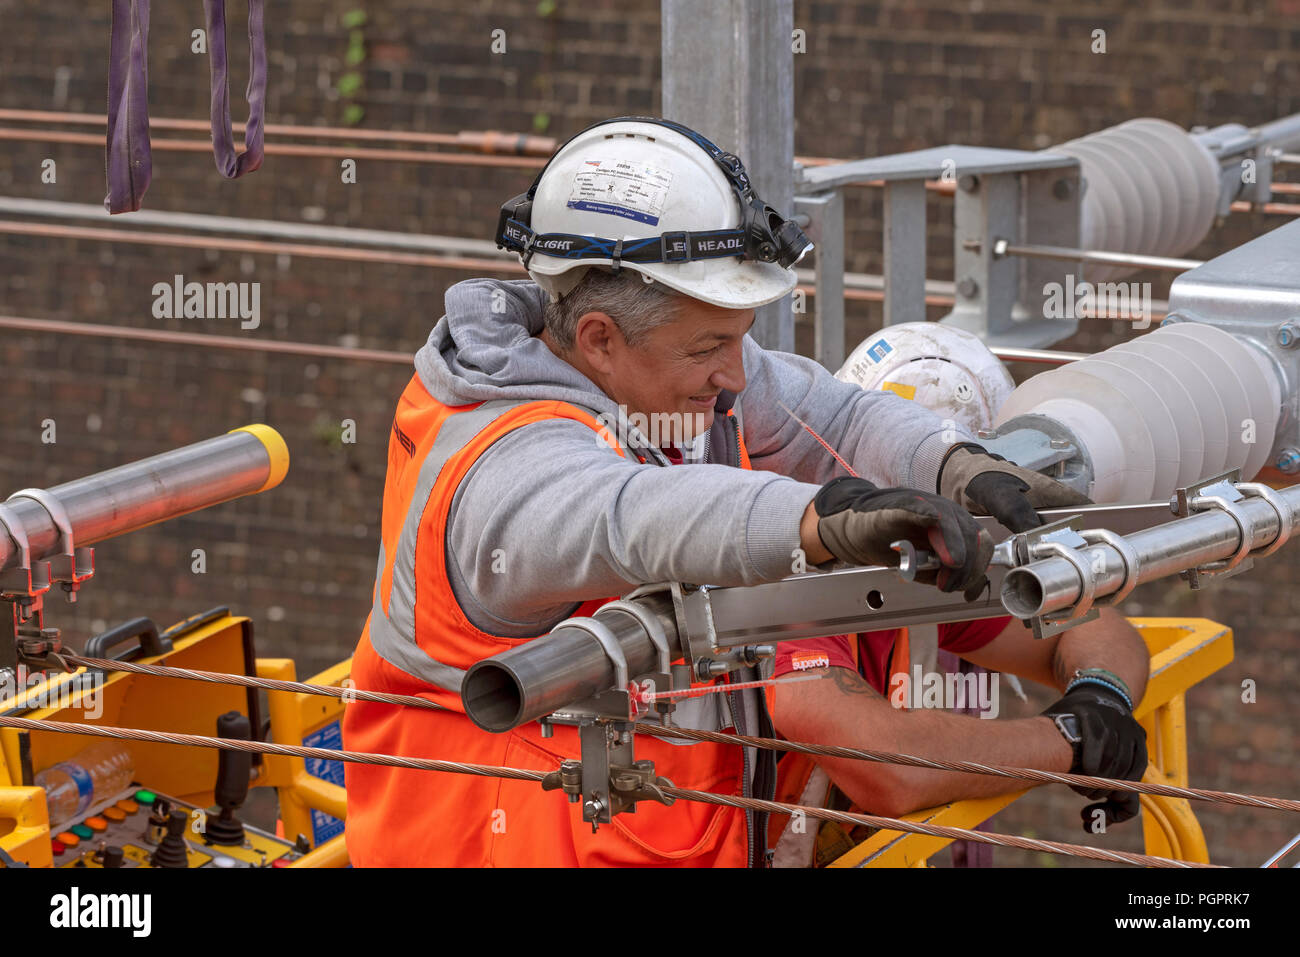 Newbury, Berkshire, UK. 28th August 2018. Newbury Station, Berkshire UK. Engineers working on the electrification  of the railway line at Newbury earlier today. The Great Western Railway region is closed in ths area until August 31st. Credit: Peter Titmuss/Alamy Live News - Stock Image